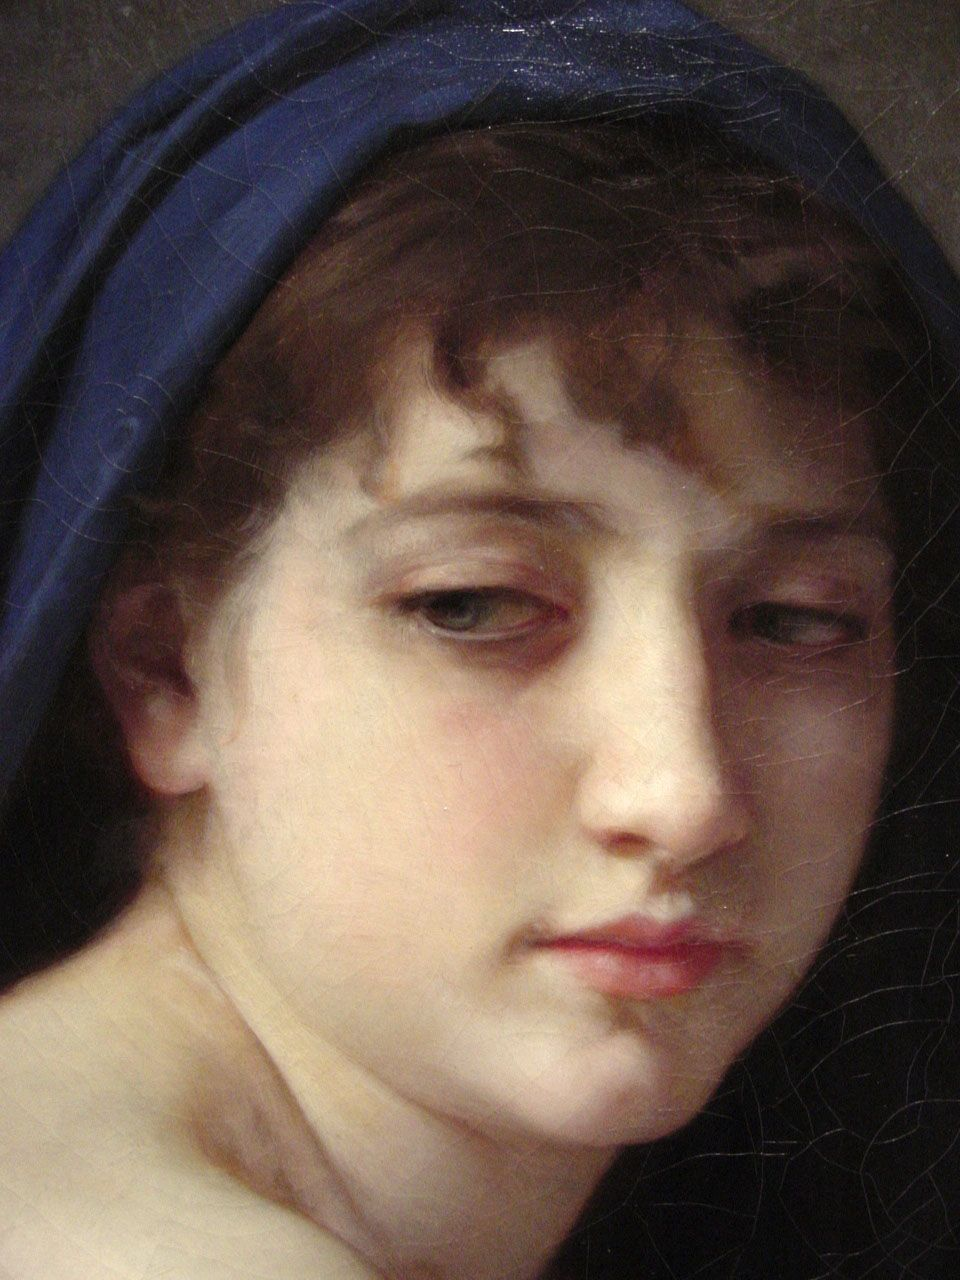 """Baigneuse Accroupie"" - William Adolphe Bouguereau - 1825/1905 - French Painter."